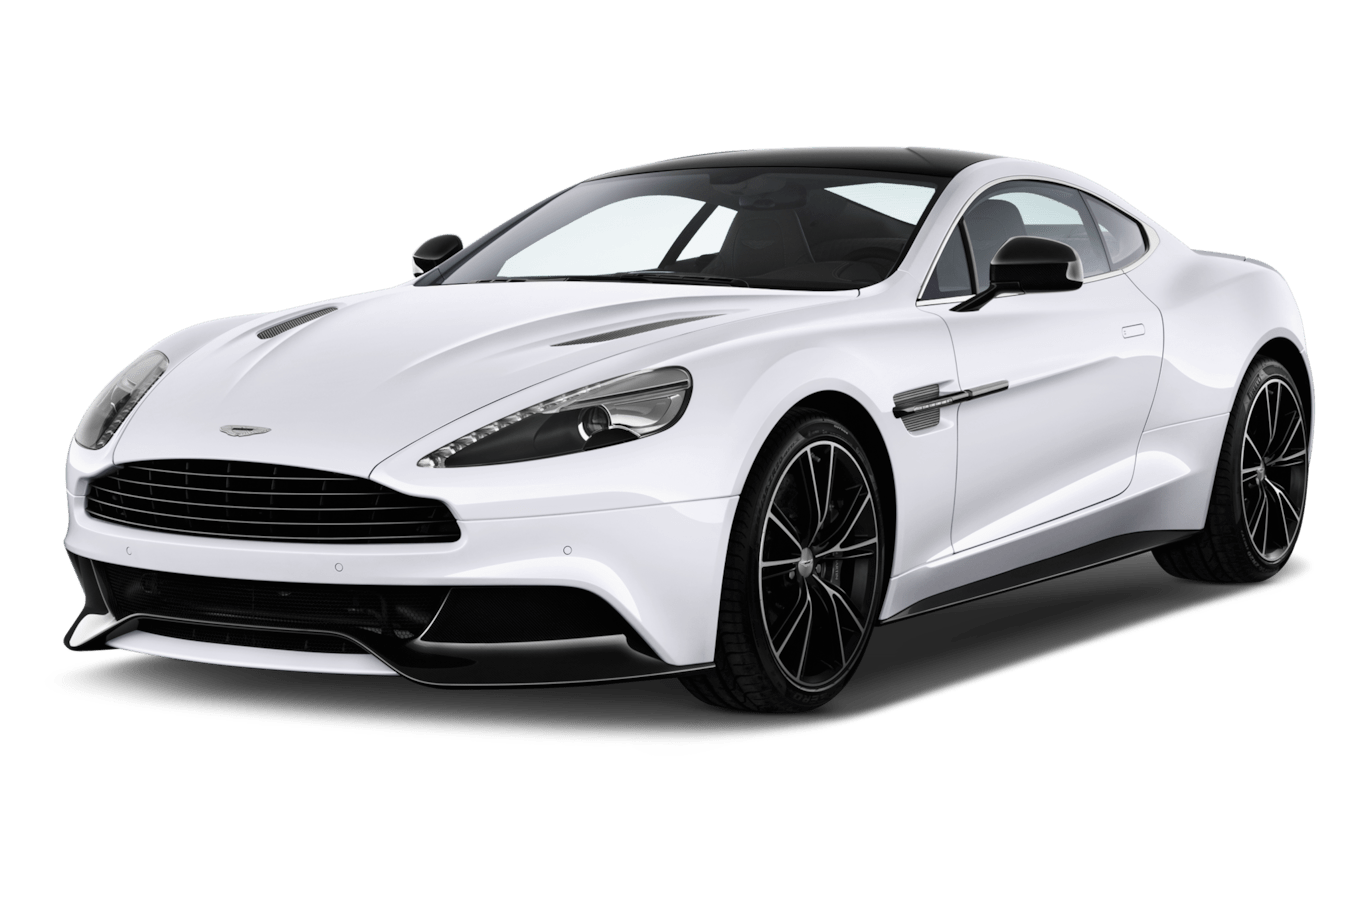 Aston Martin Cars, Convertible, Coupe, Sedan Reviews